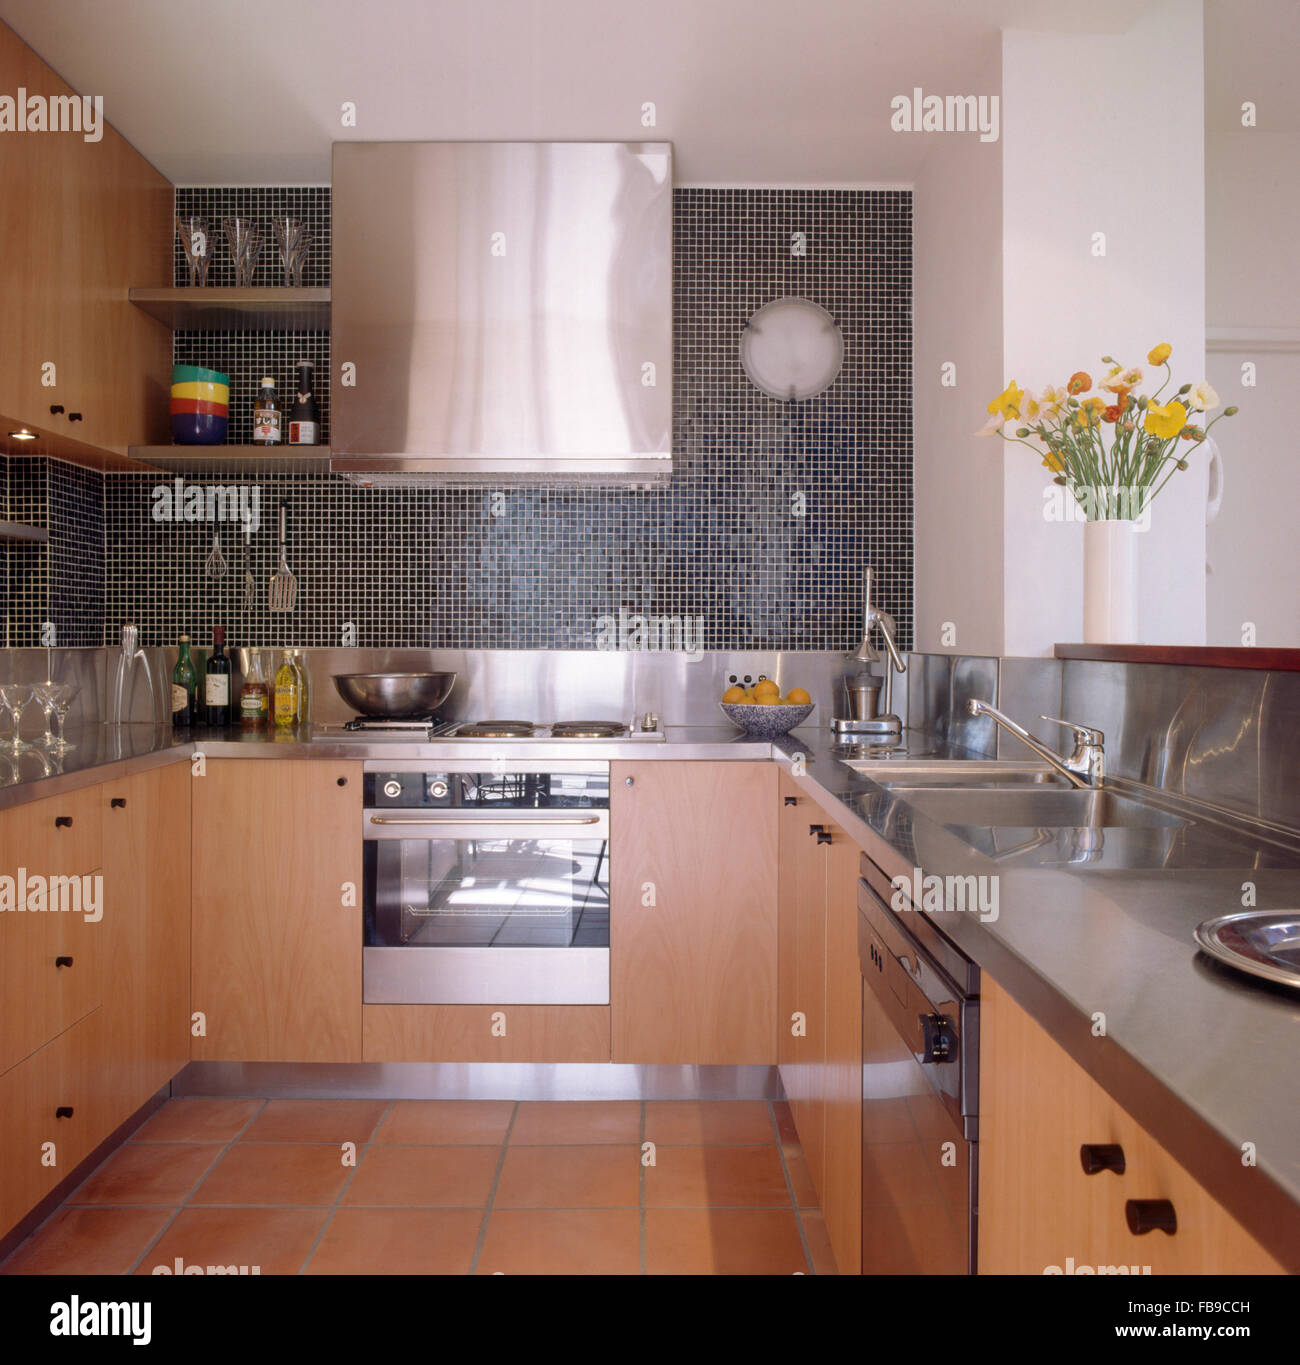 Modern Kitchen Mosaic stainless steel extractor and oven in modern kitchen with mosaic